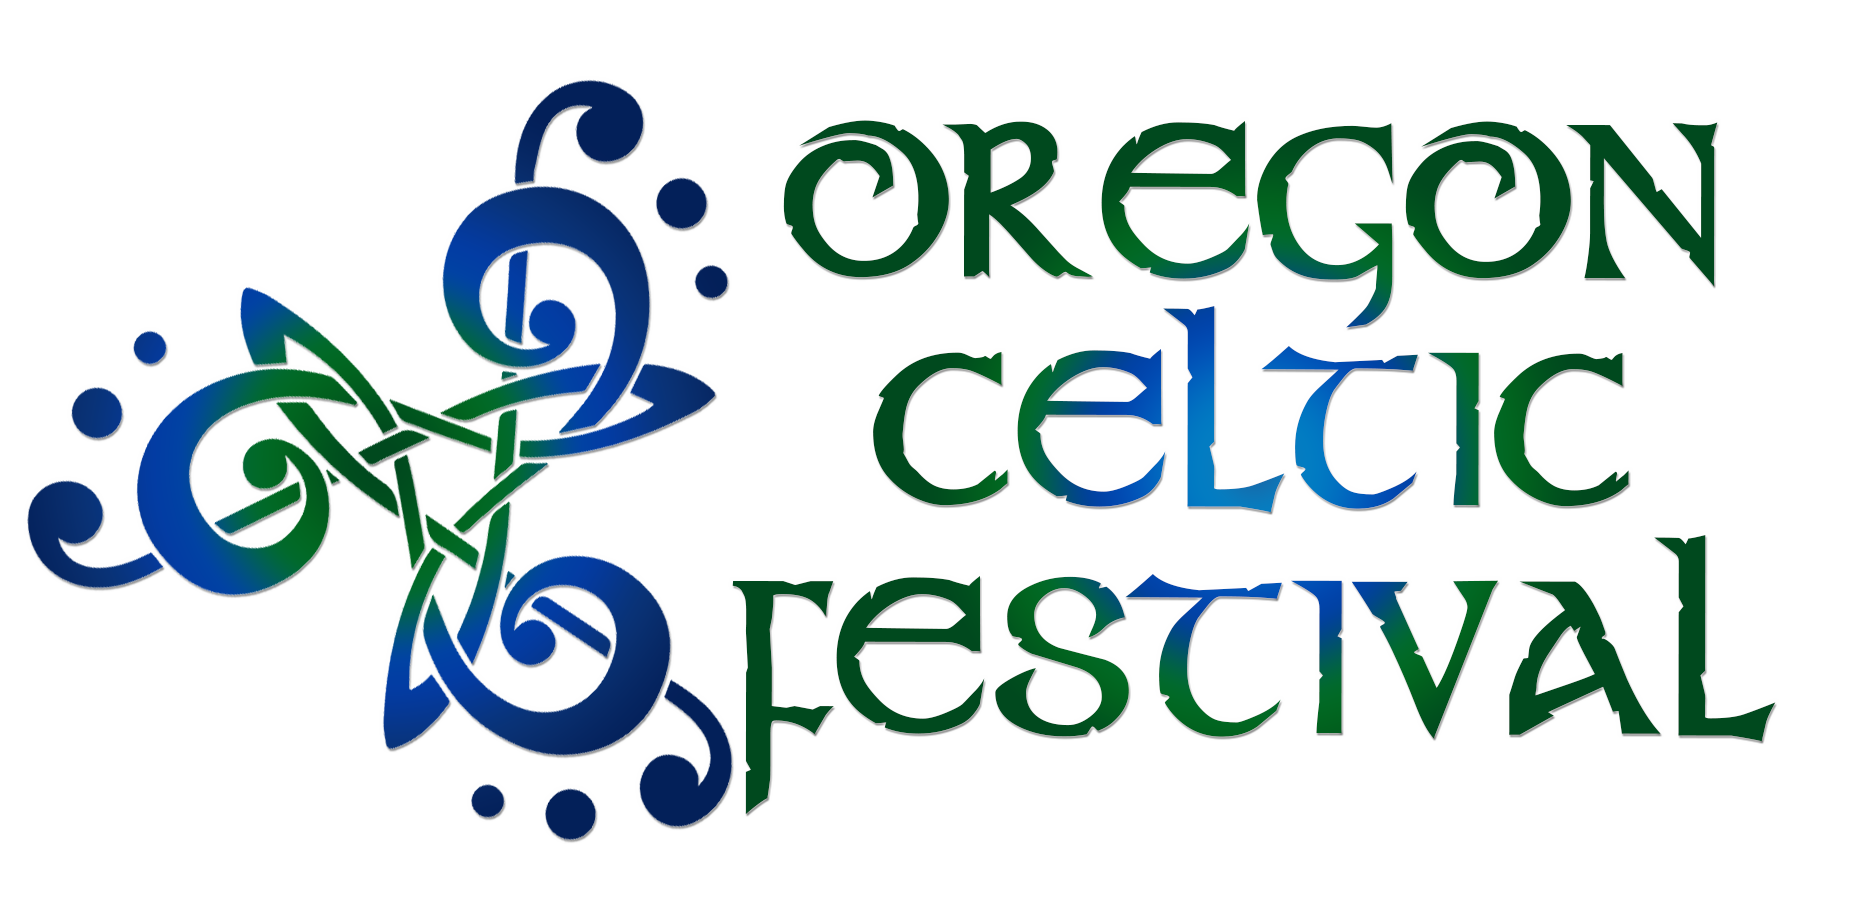 Oregon Celtic Festival